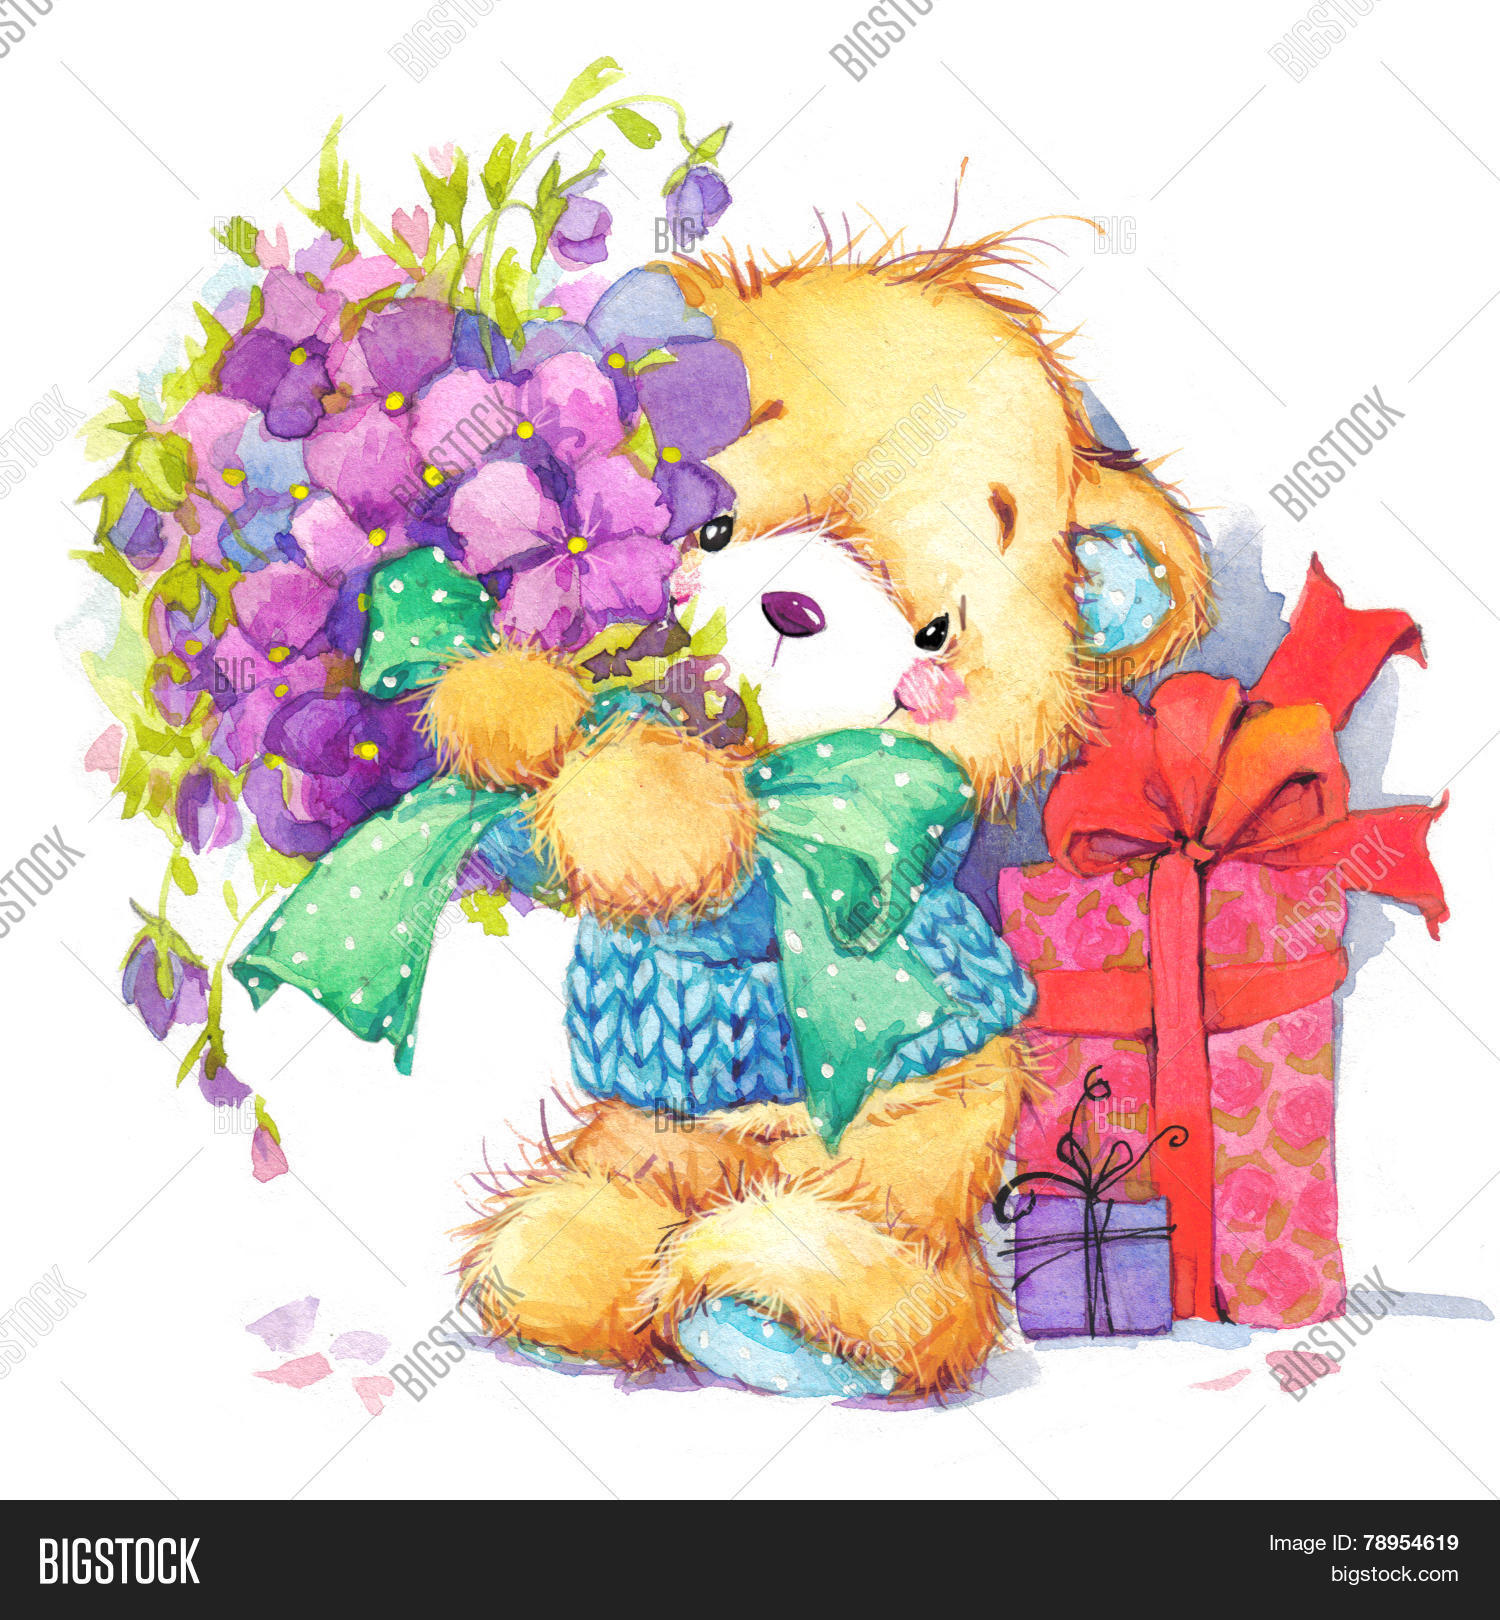 Teddy bearckground image photo free trial bigstock teddy bearckground for birthday cardwatercolor izmirmasajfo